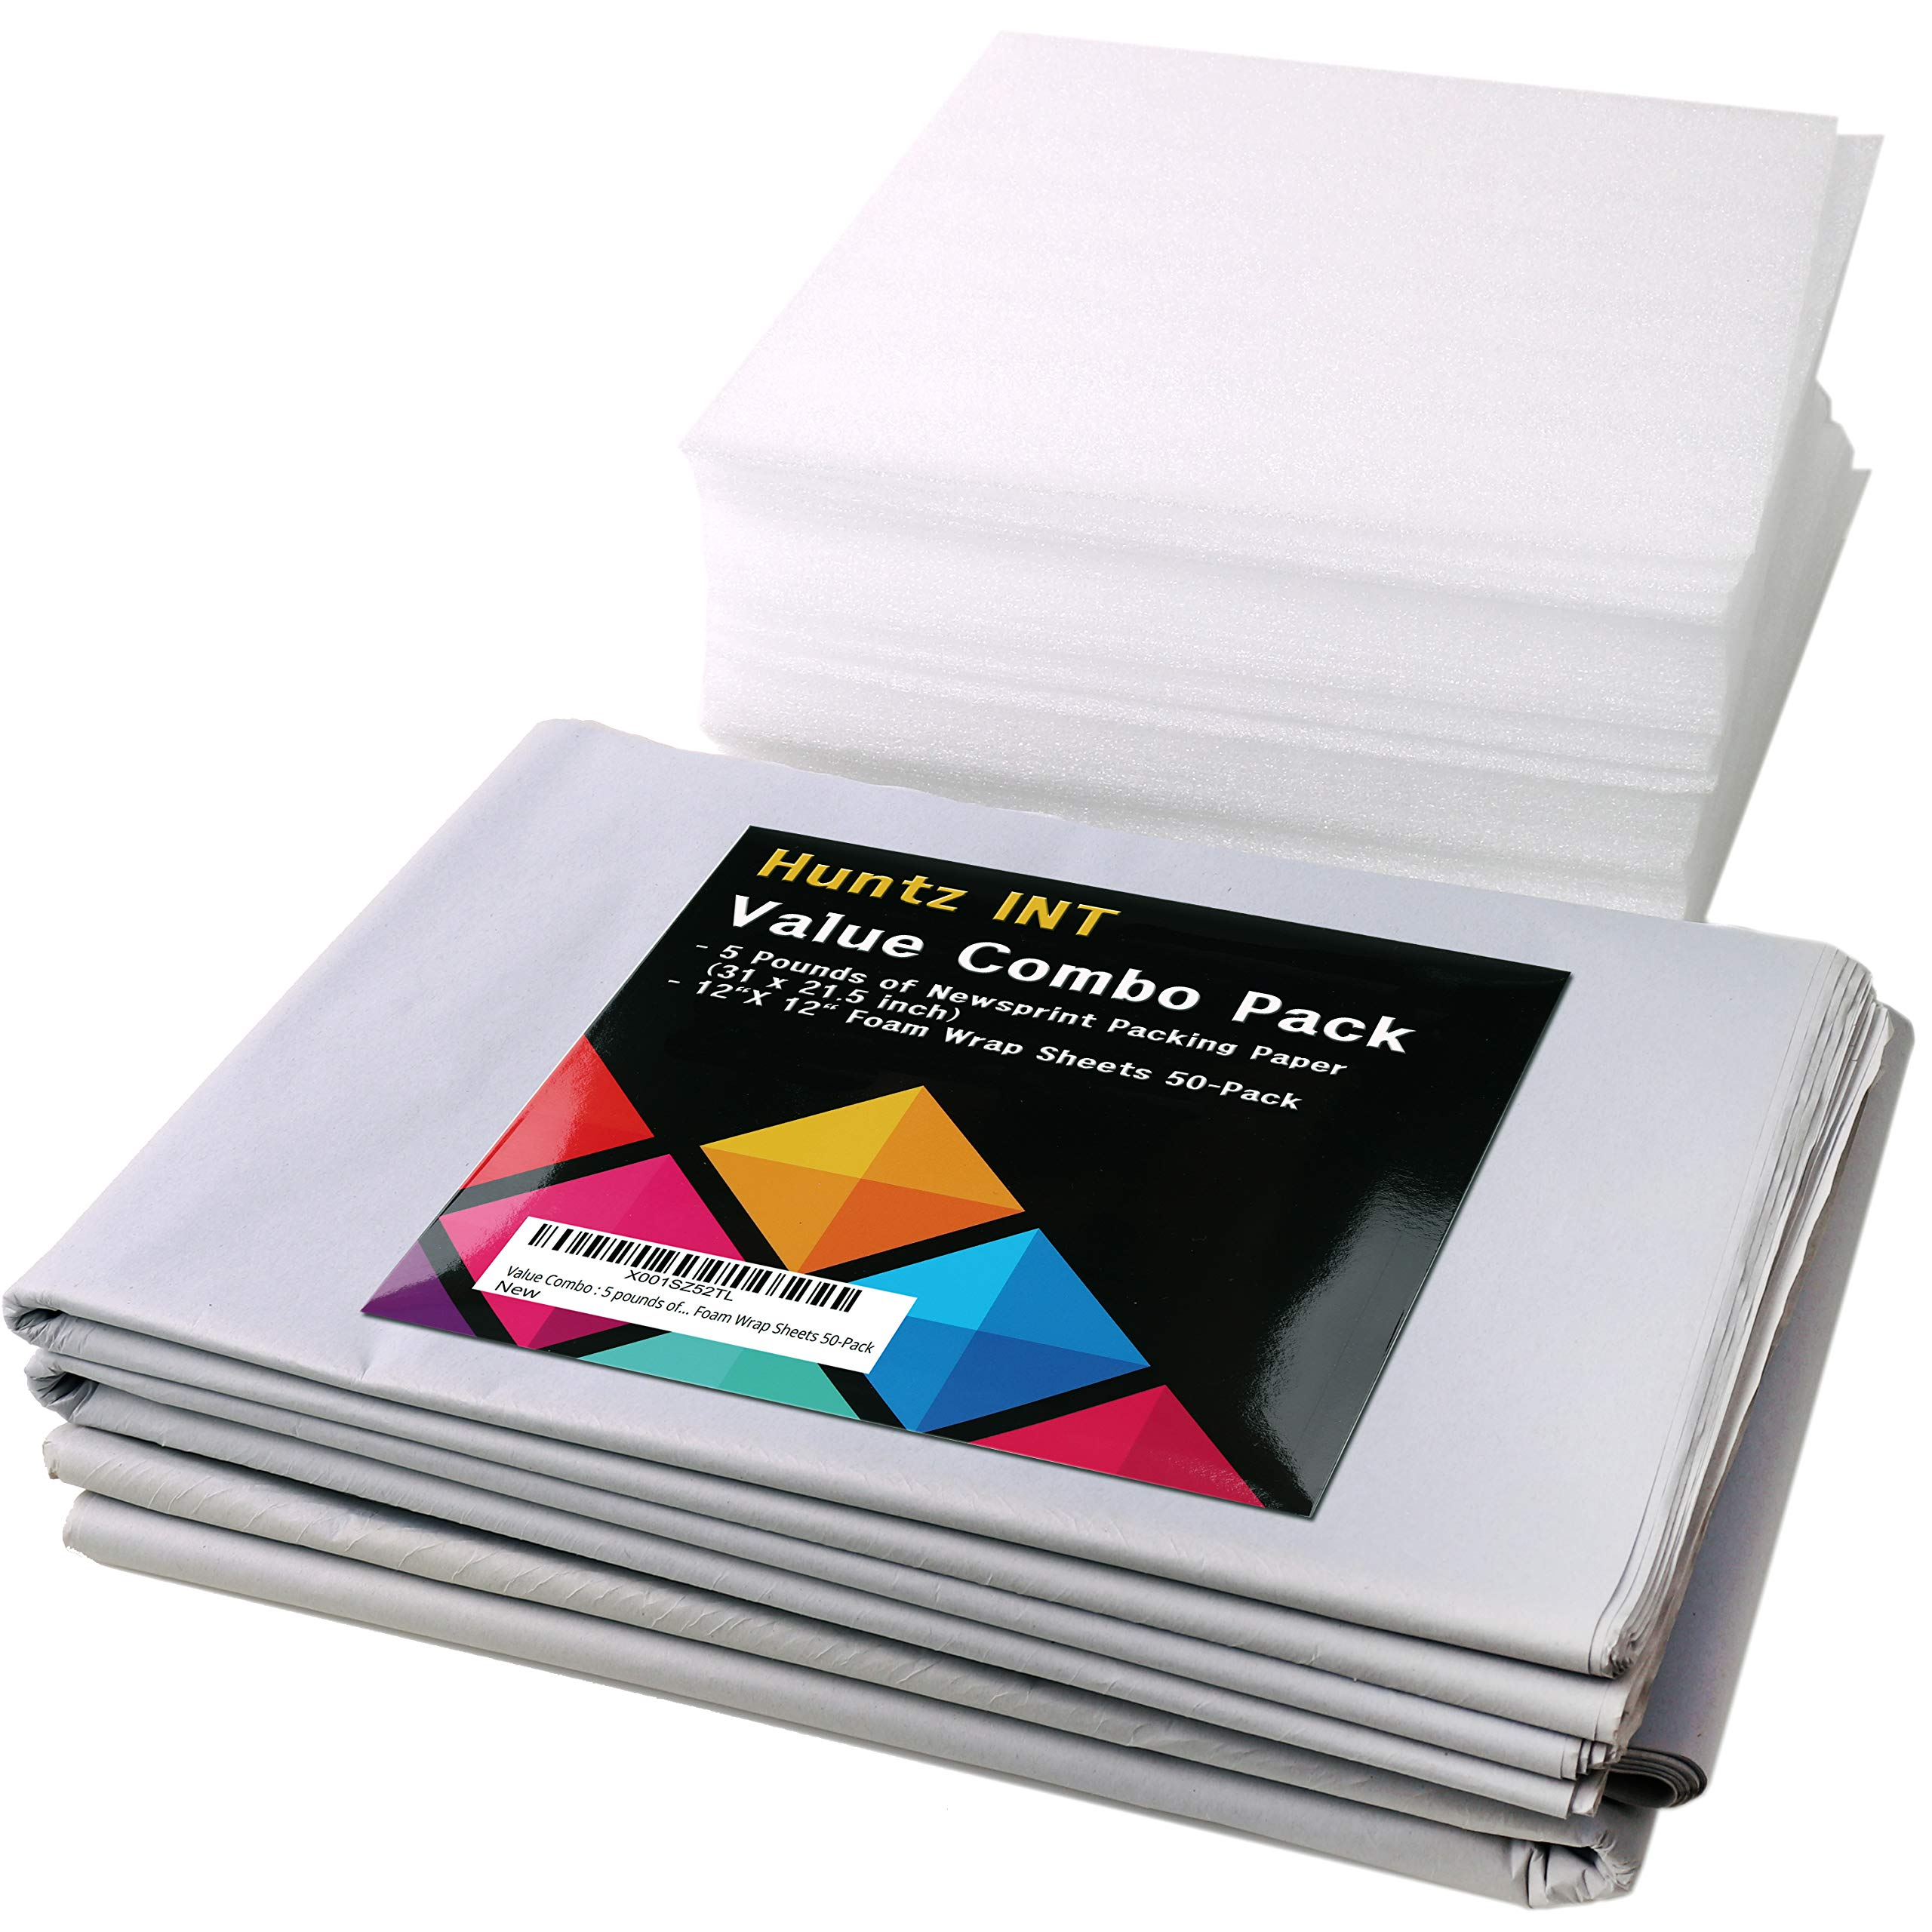 Value Combo : 5 pounds of Quality Packing Paper (31 x 21.5 inch) & 12''X 12'' Foam Wrap Sheets 50-Pack